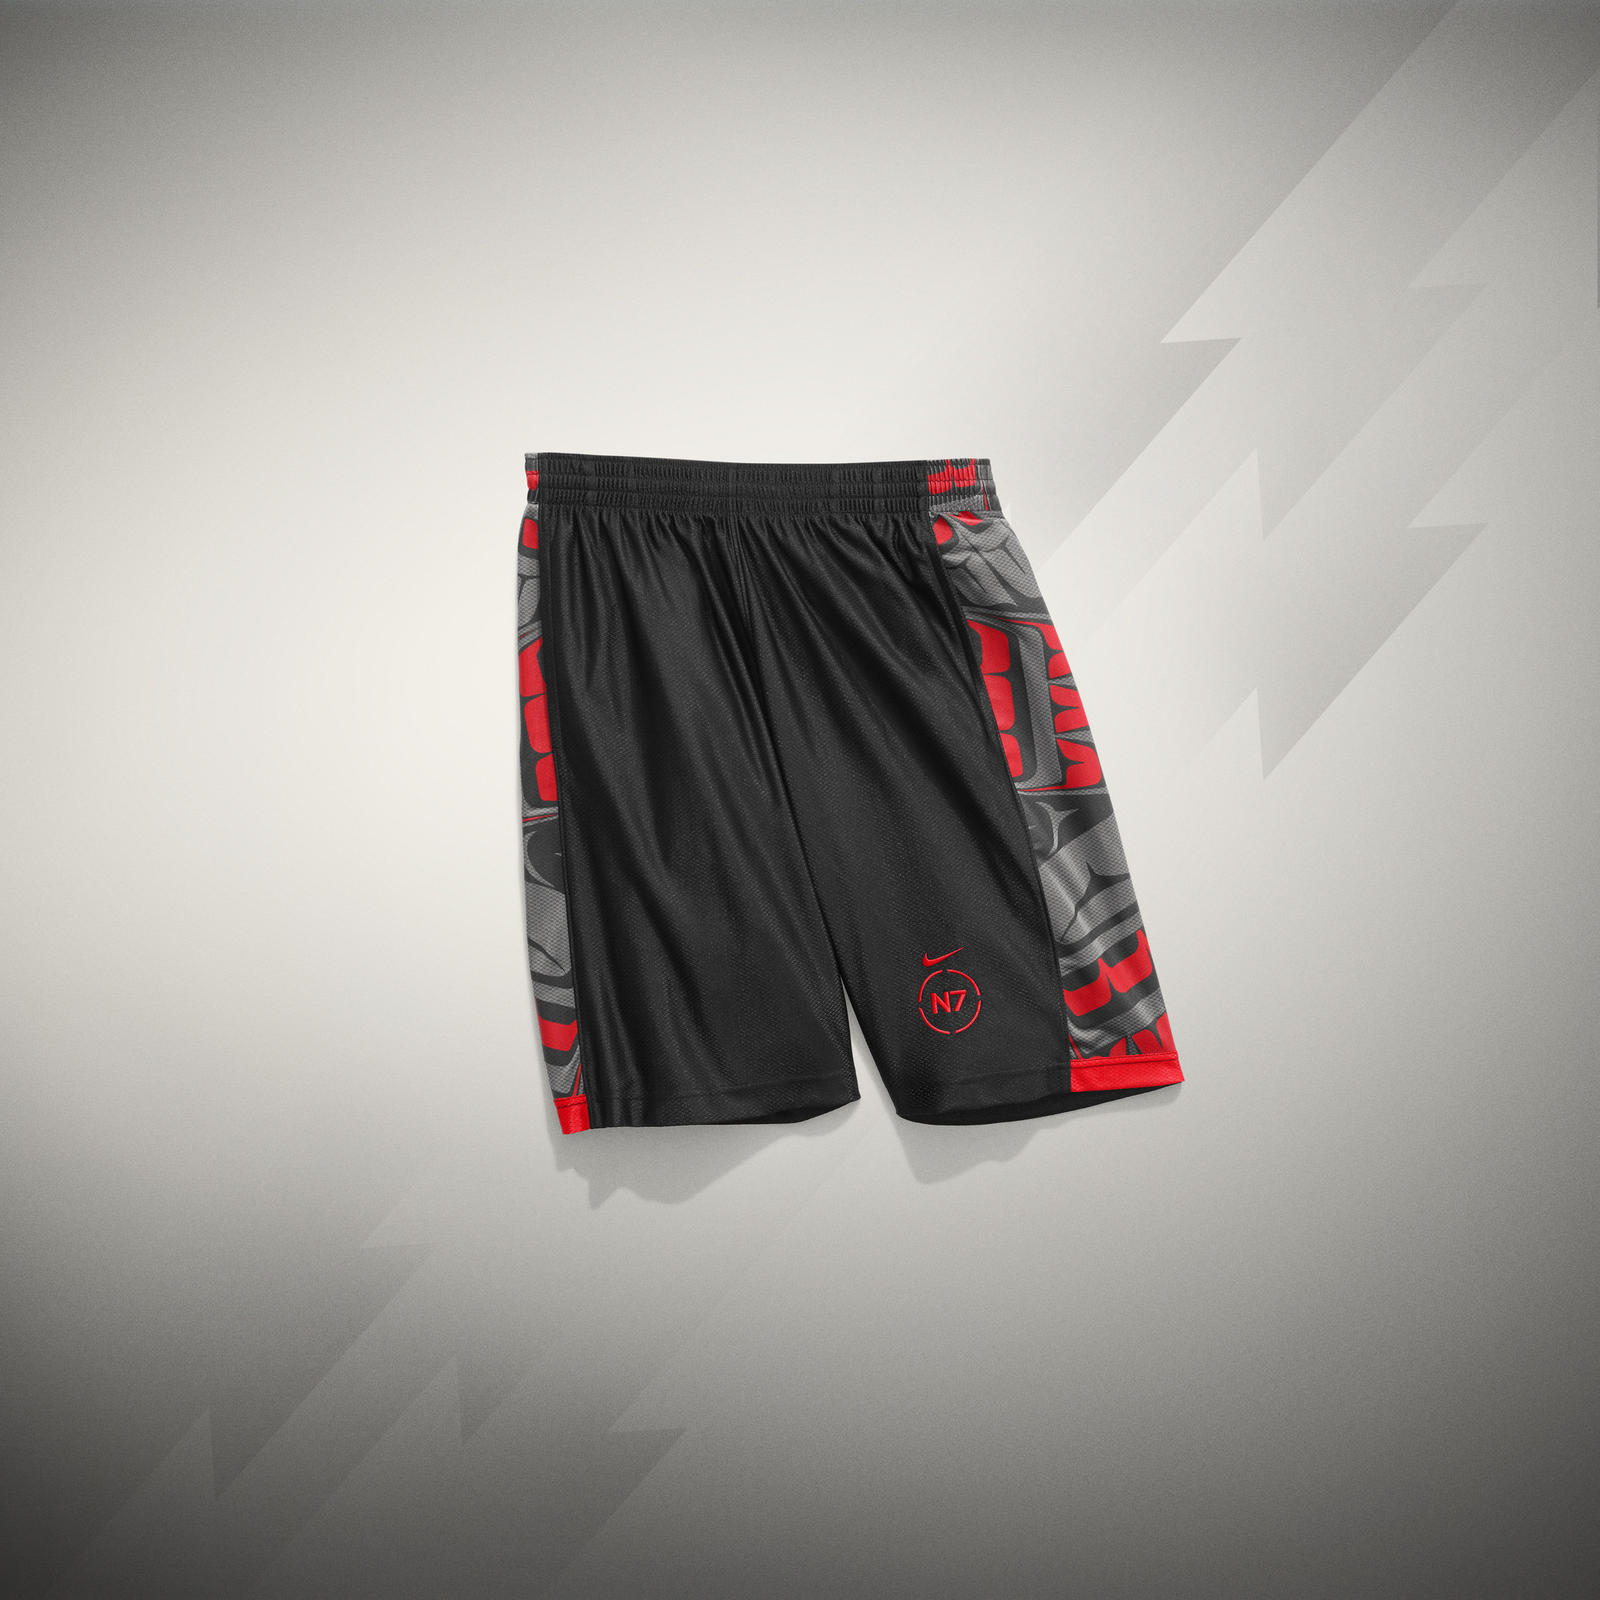 Ho14_N7_Printed_Zone_Short_655843-010_Hero